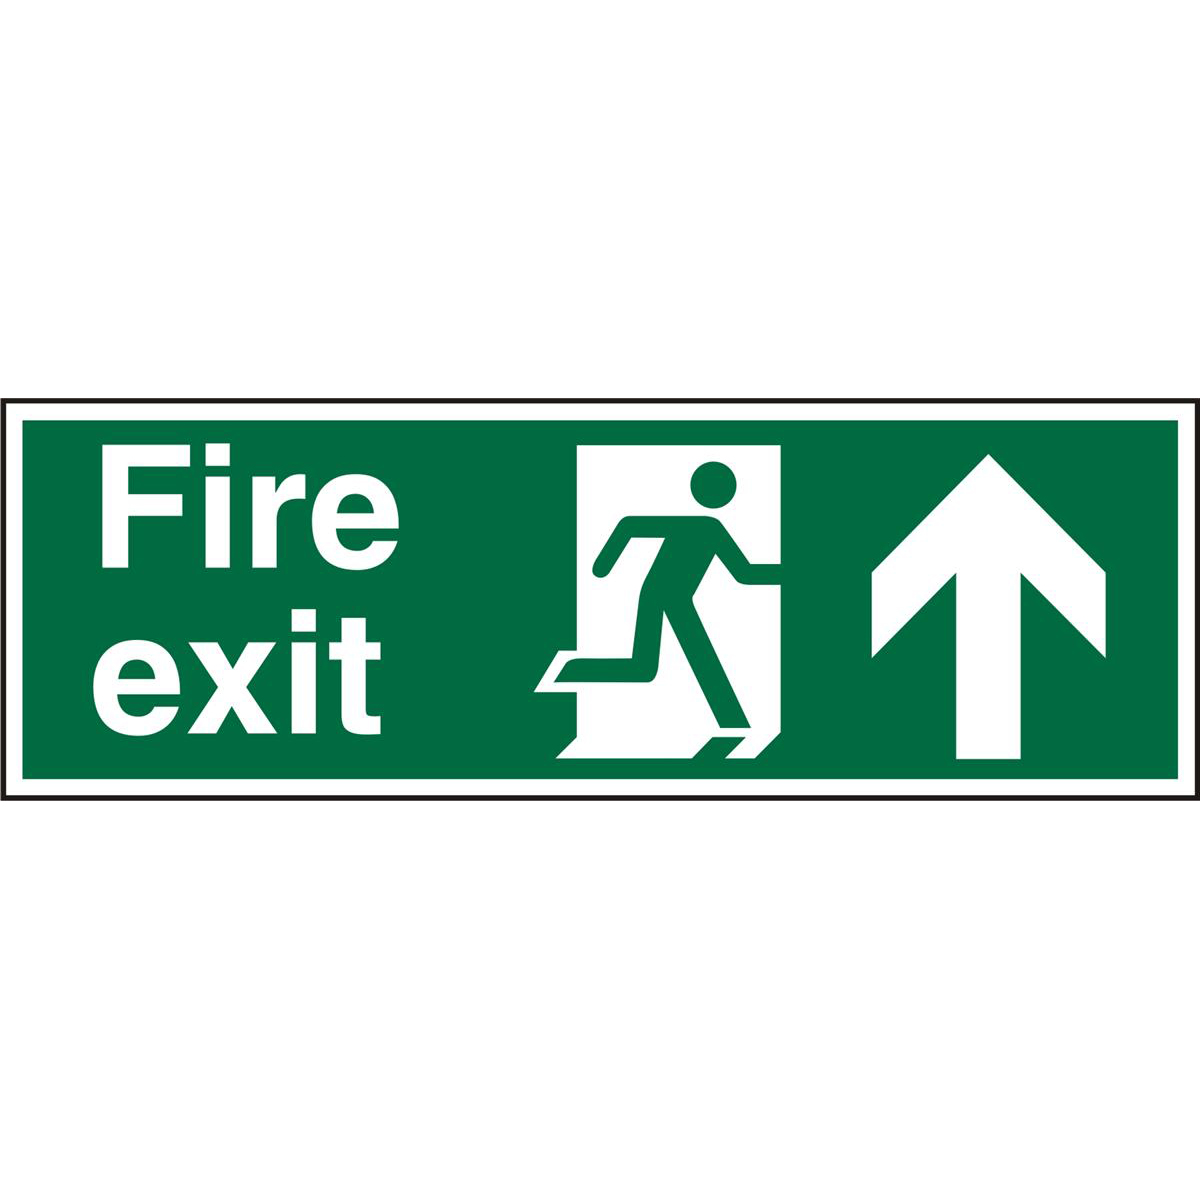 Safety signs PrestigeSgns 2mm 300x100 FireExit Man Running Right&Arrow Up Ref ACSP129300x100 *Up to 10 Day Leadtime*